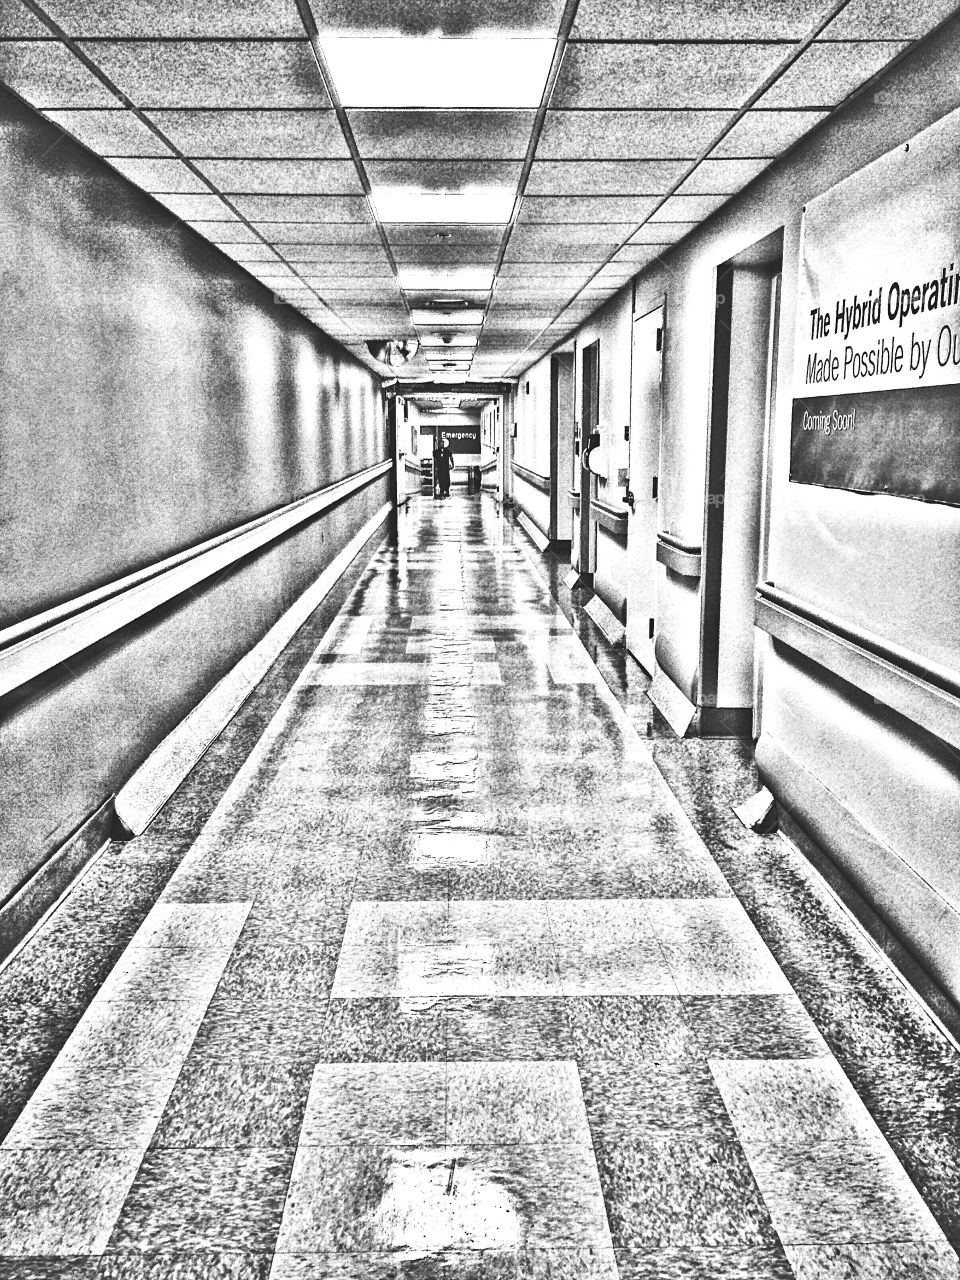 At the hospital...